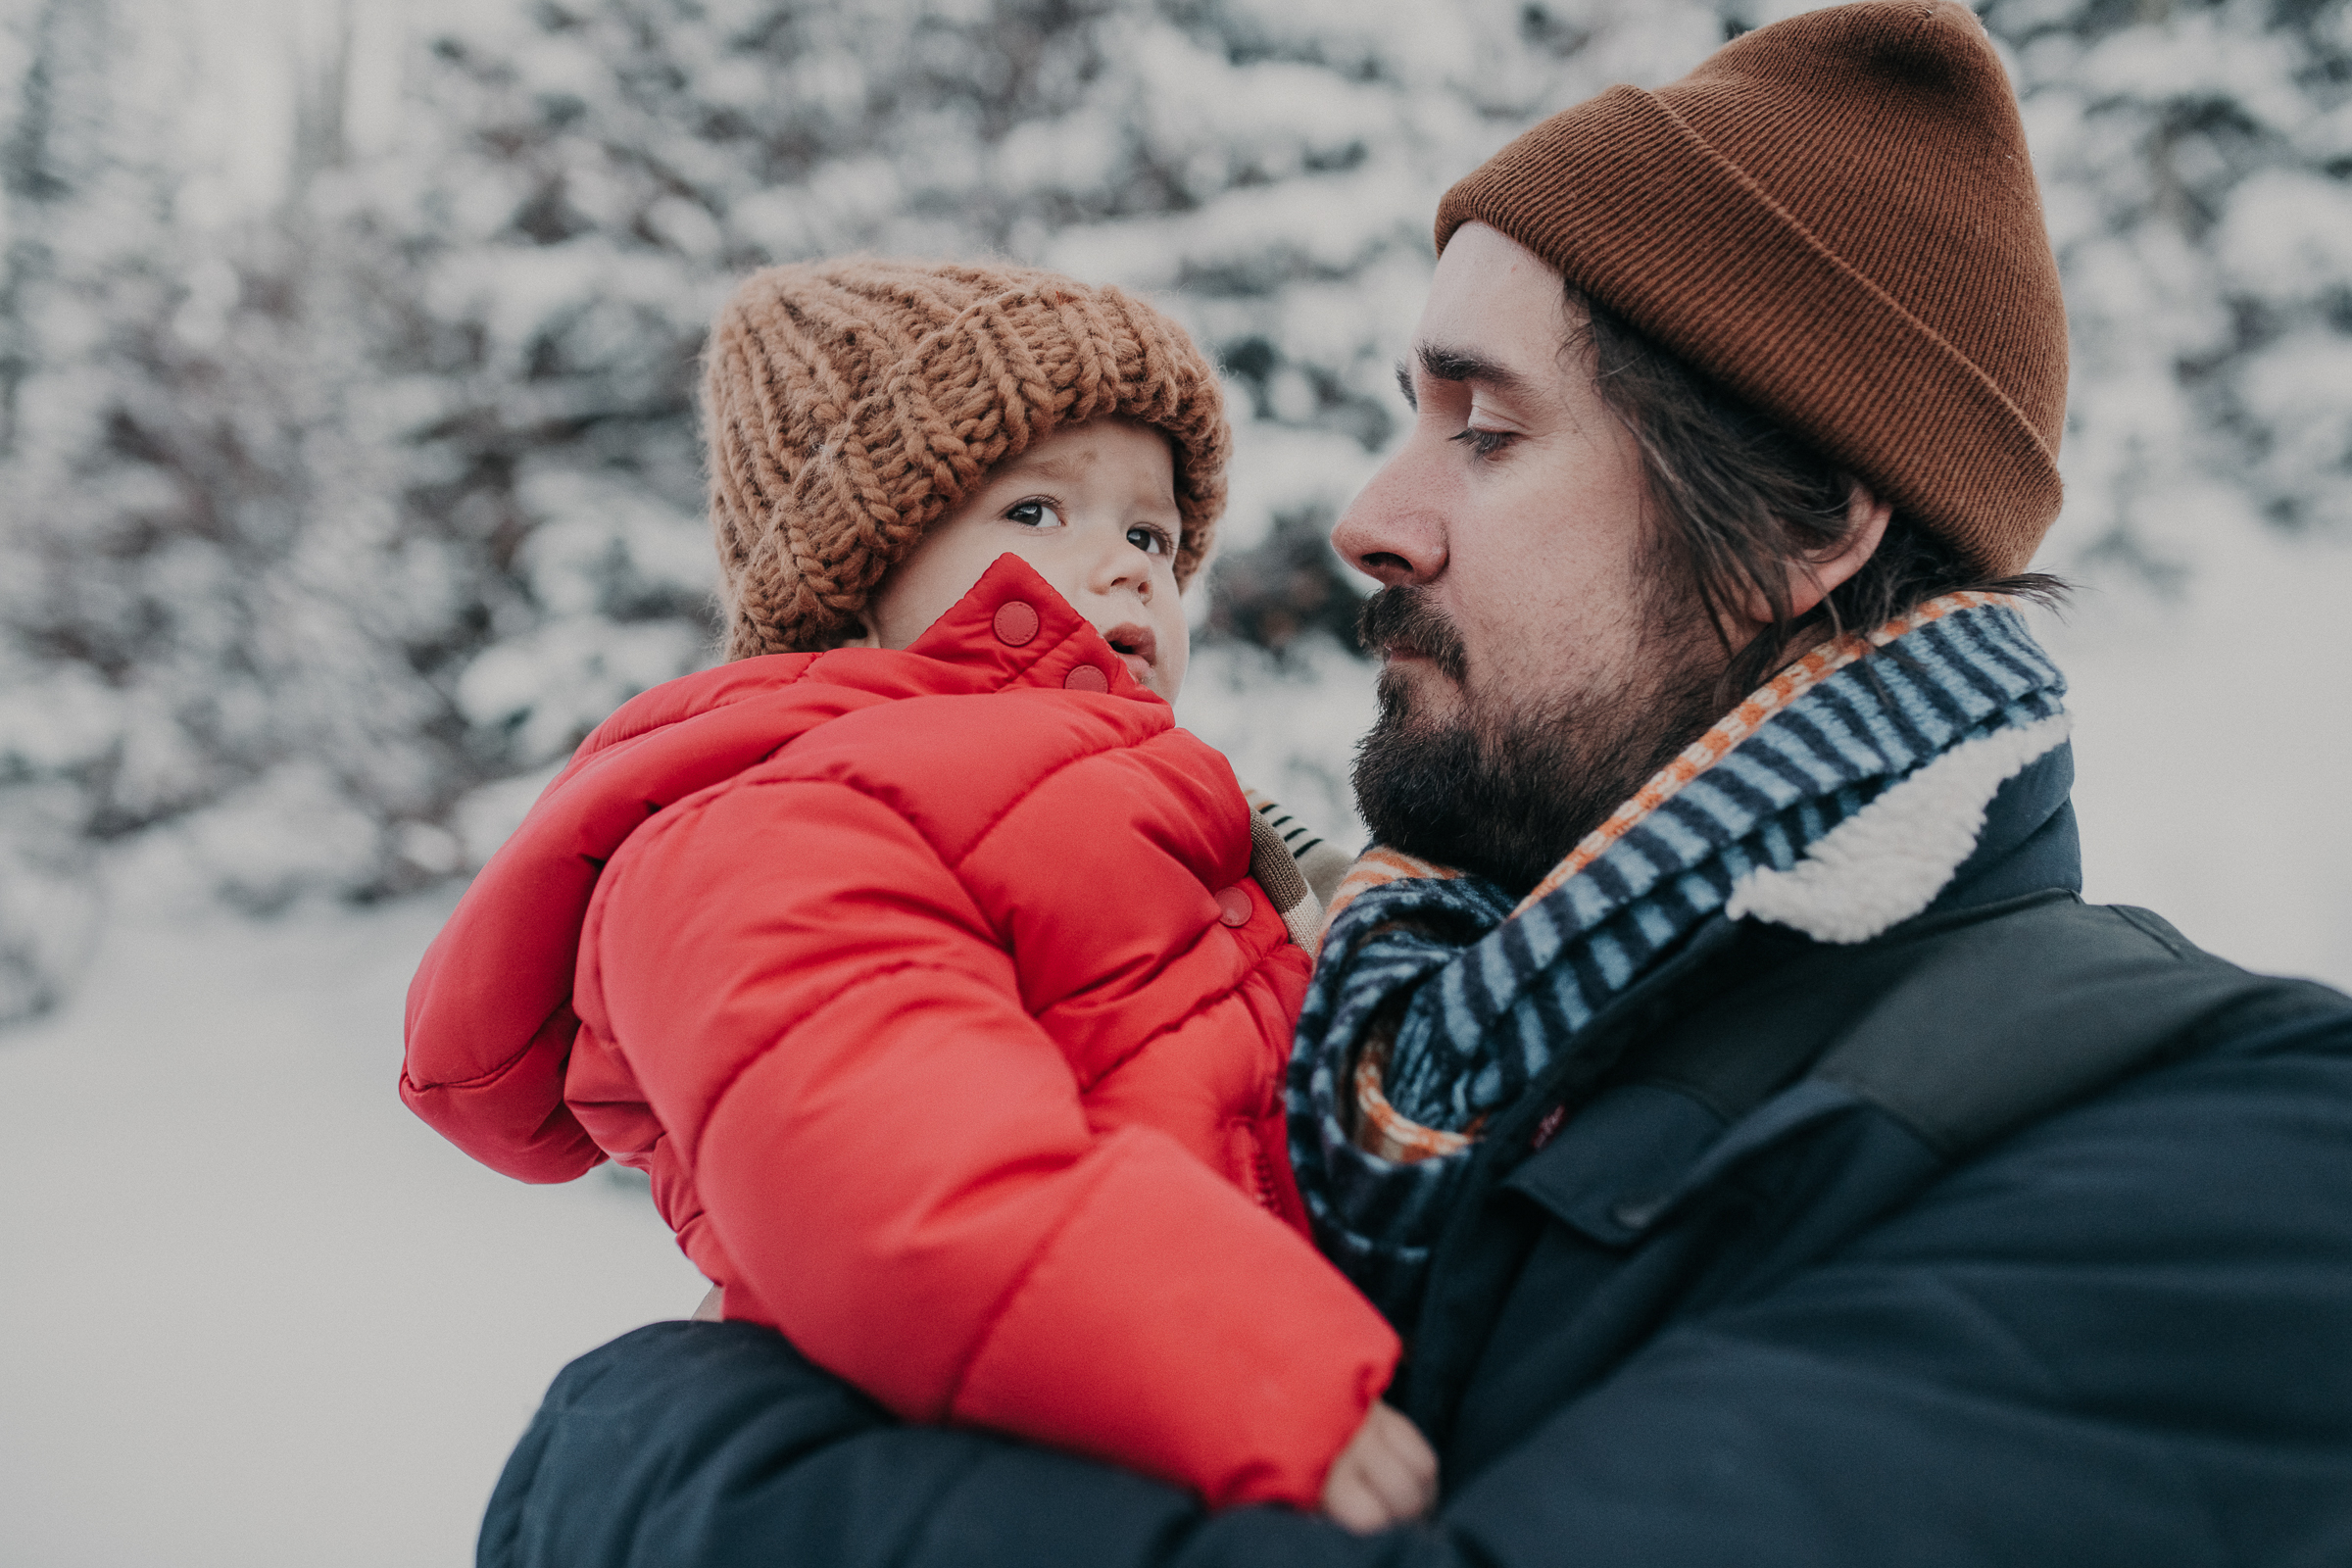 Dad and son standing in the snowy mountains